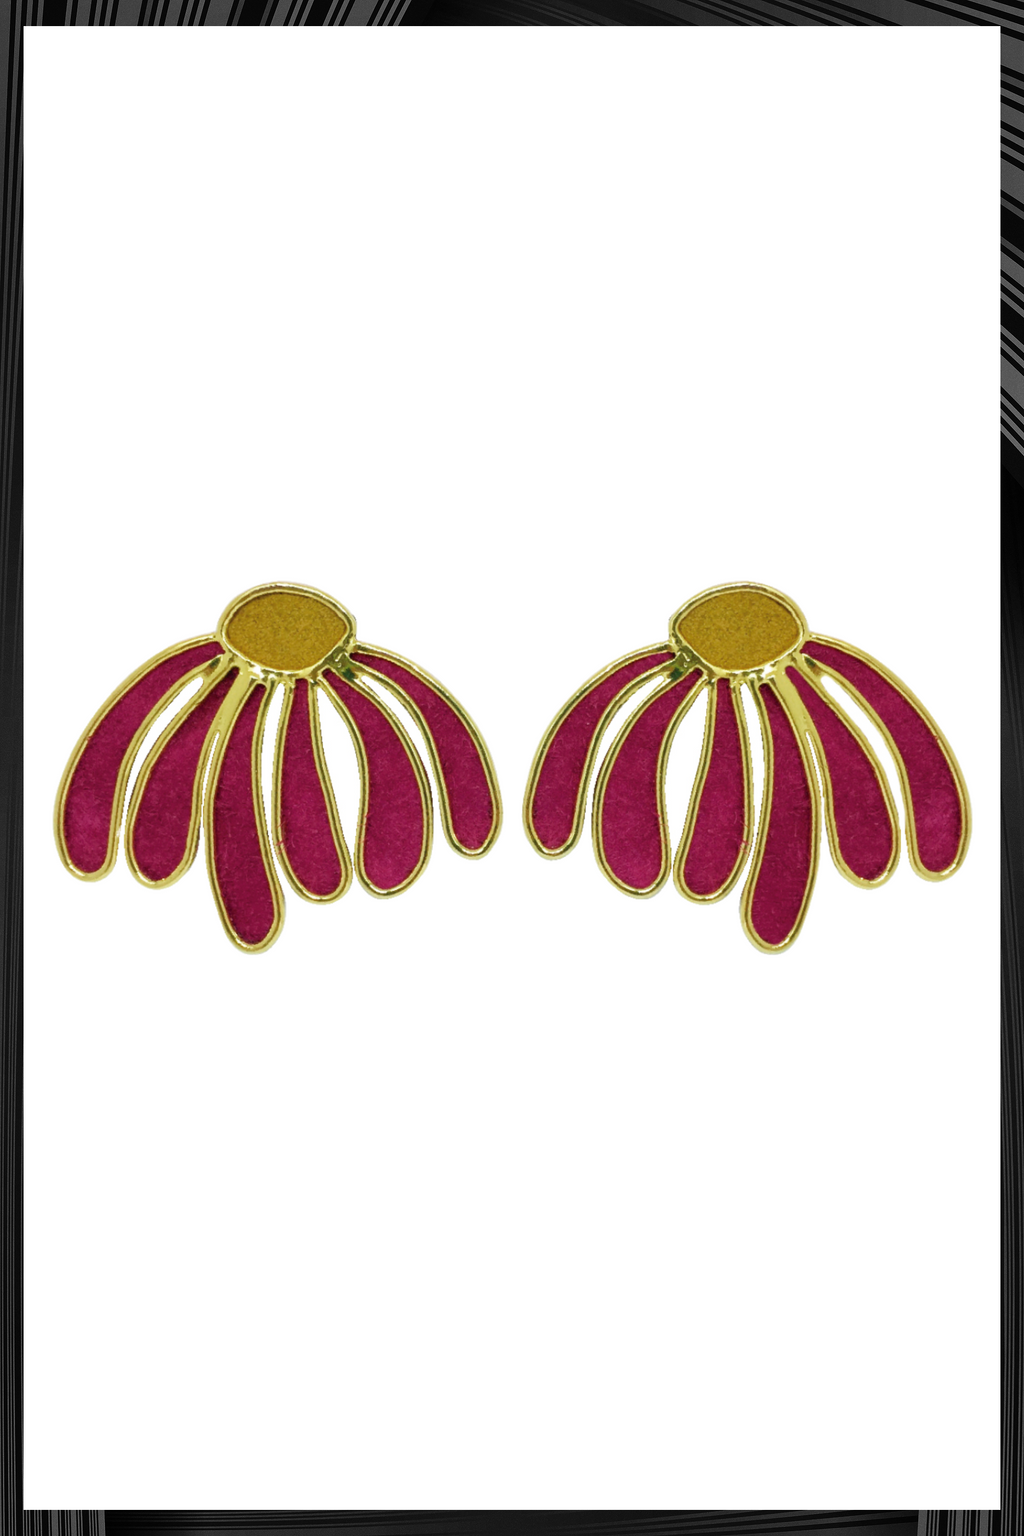 Magenta Margarita Earrings  | Free Delivery - 3 Week Shipping